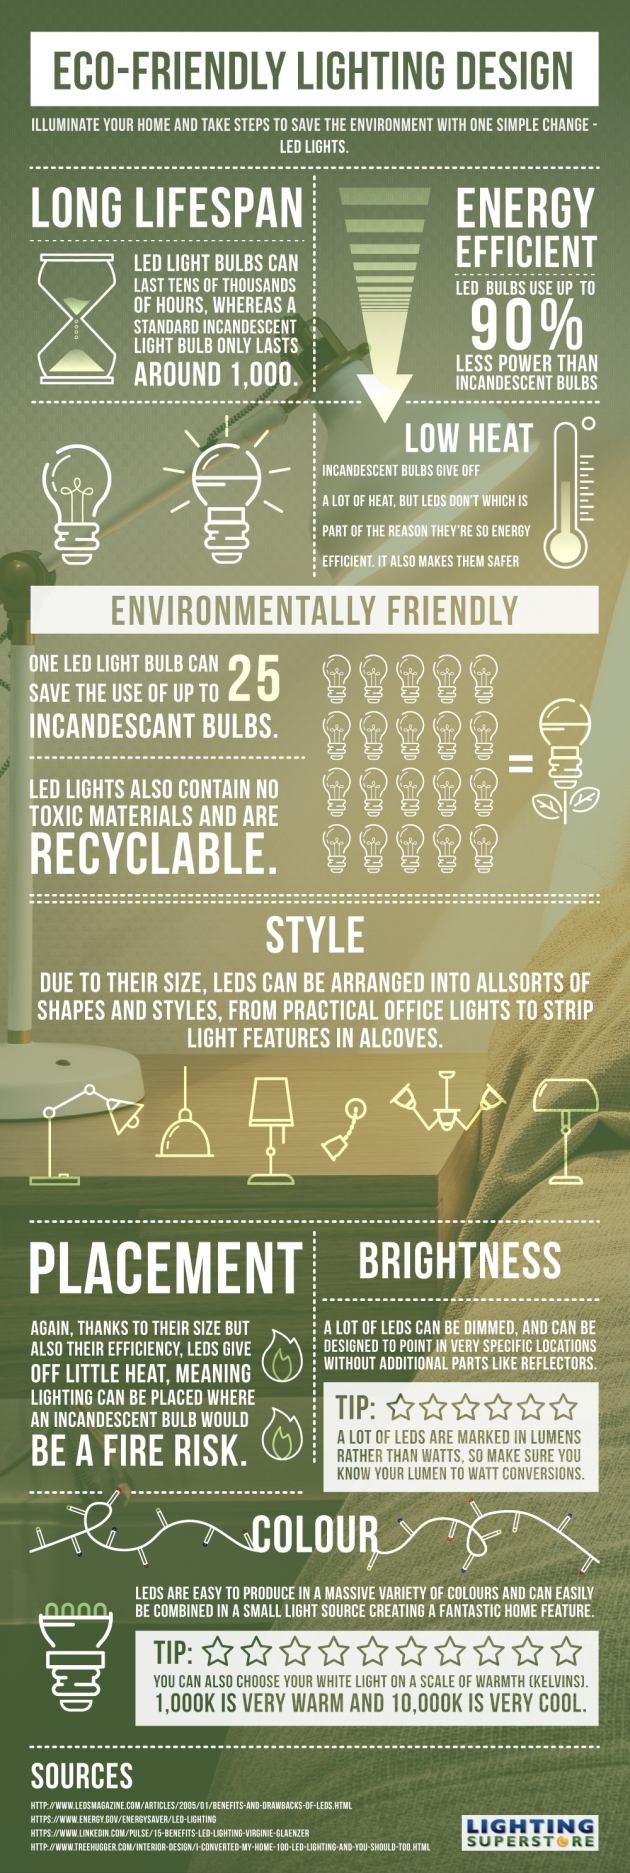 5 Reasons Why You Should Switch to LED Lighting